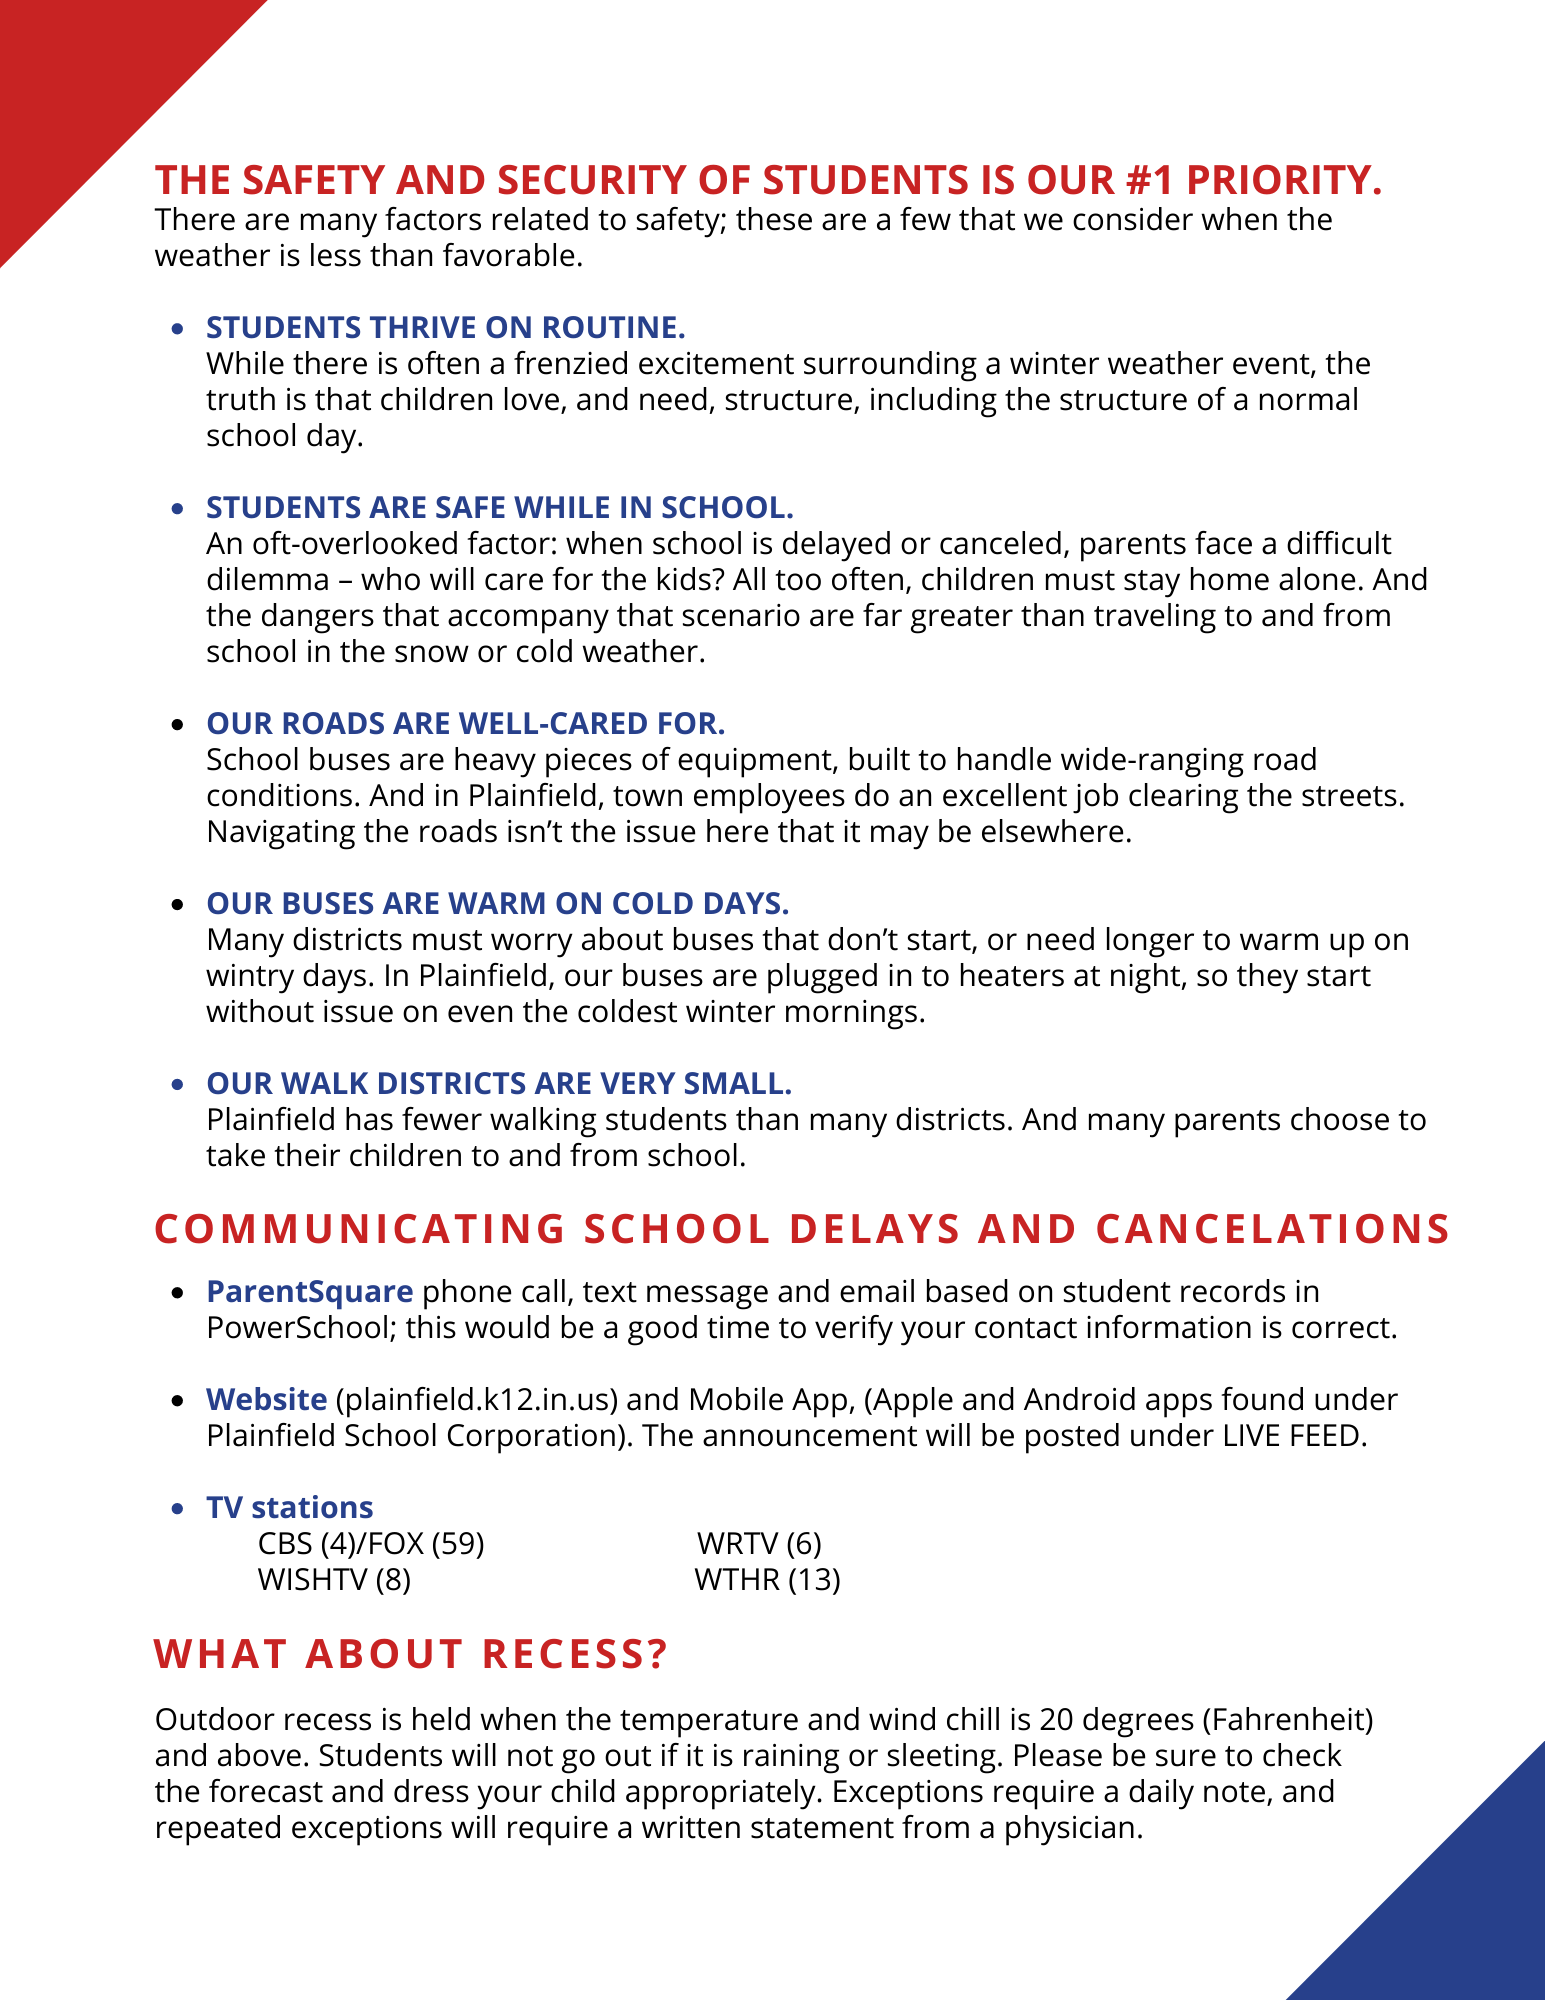 Additional information about snow days, two-hour delays, early dismissals and recess